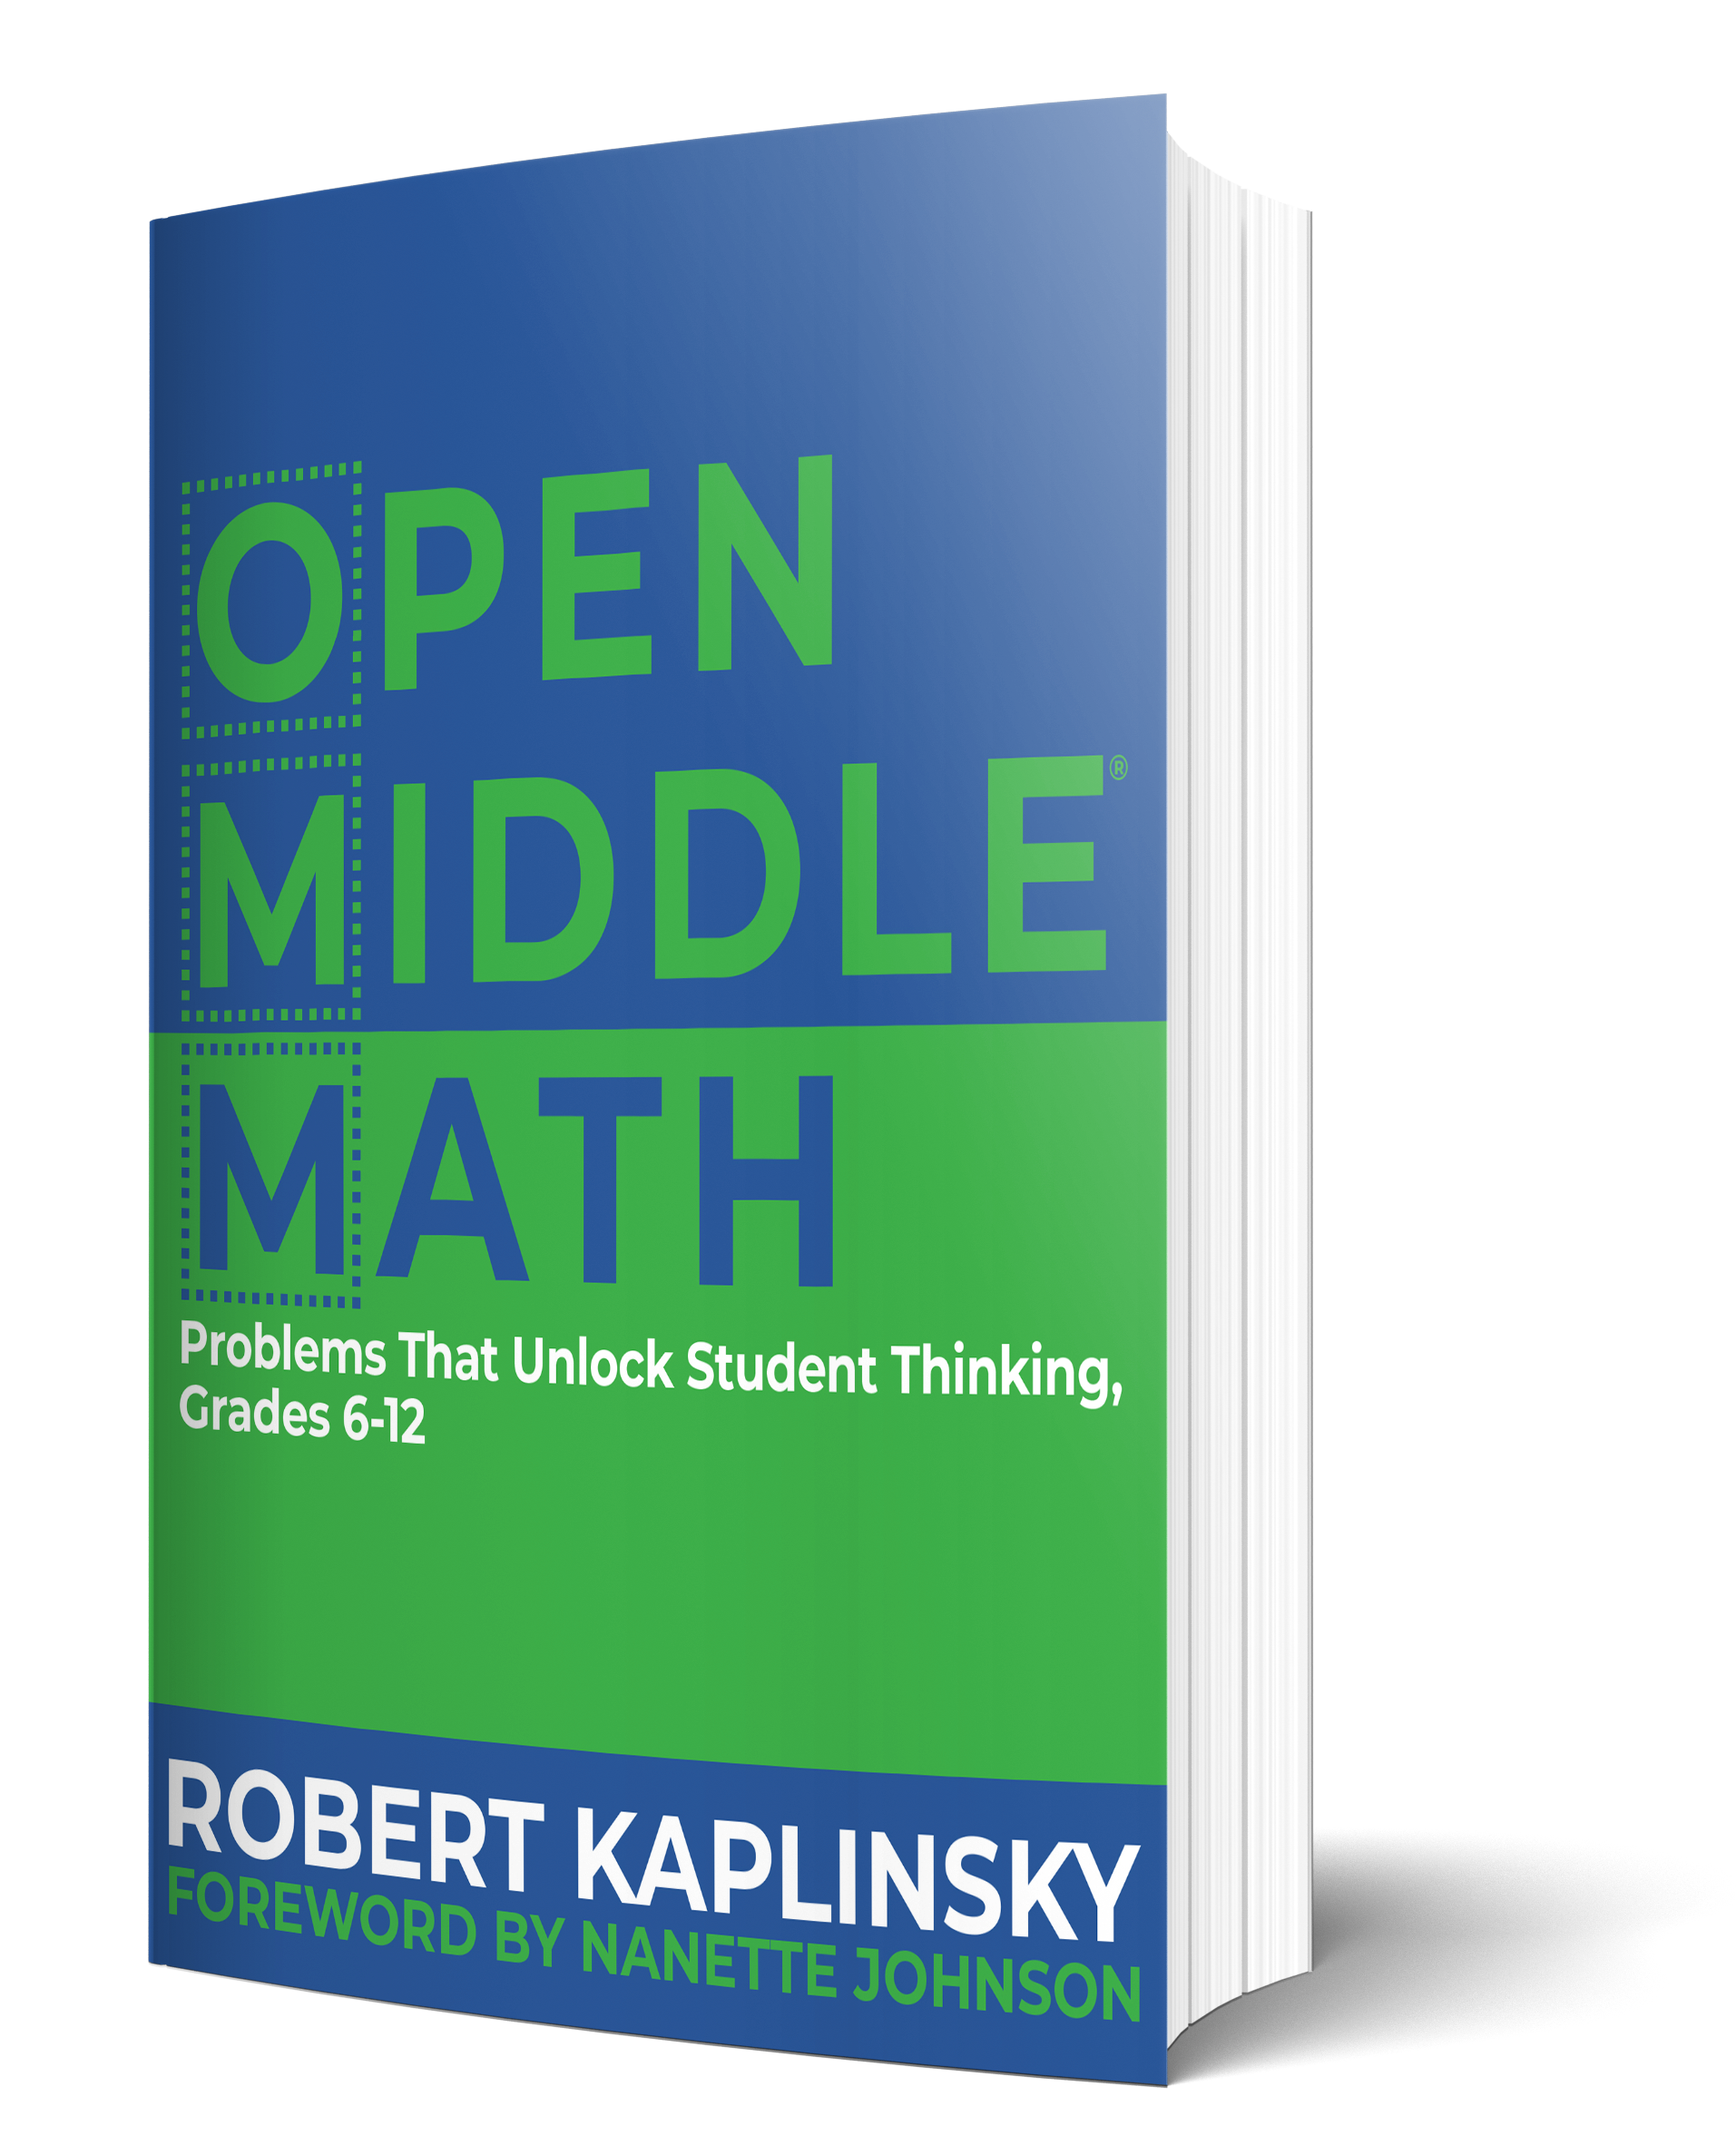 What Does an Open Middle Classroom Look Like?